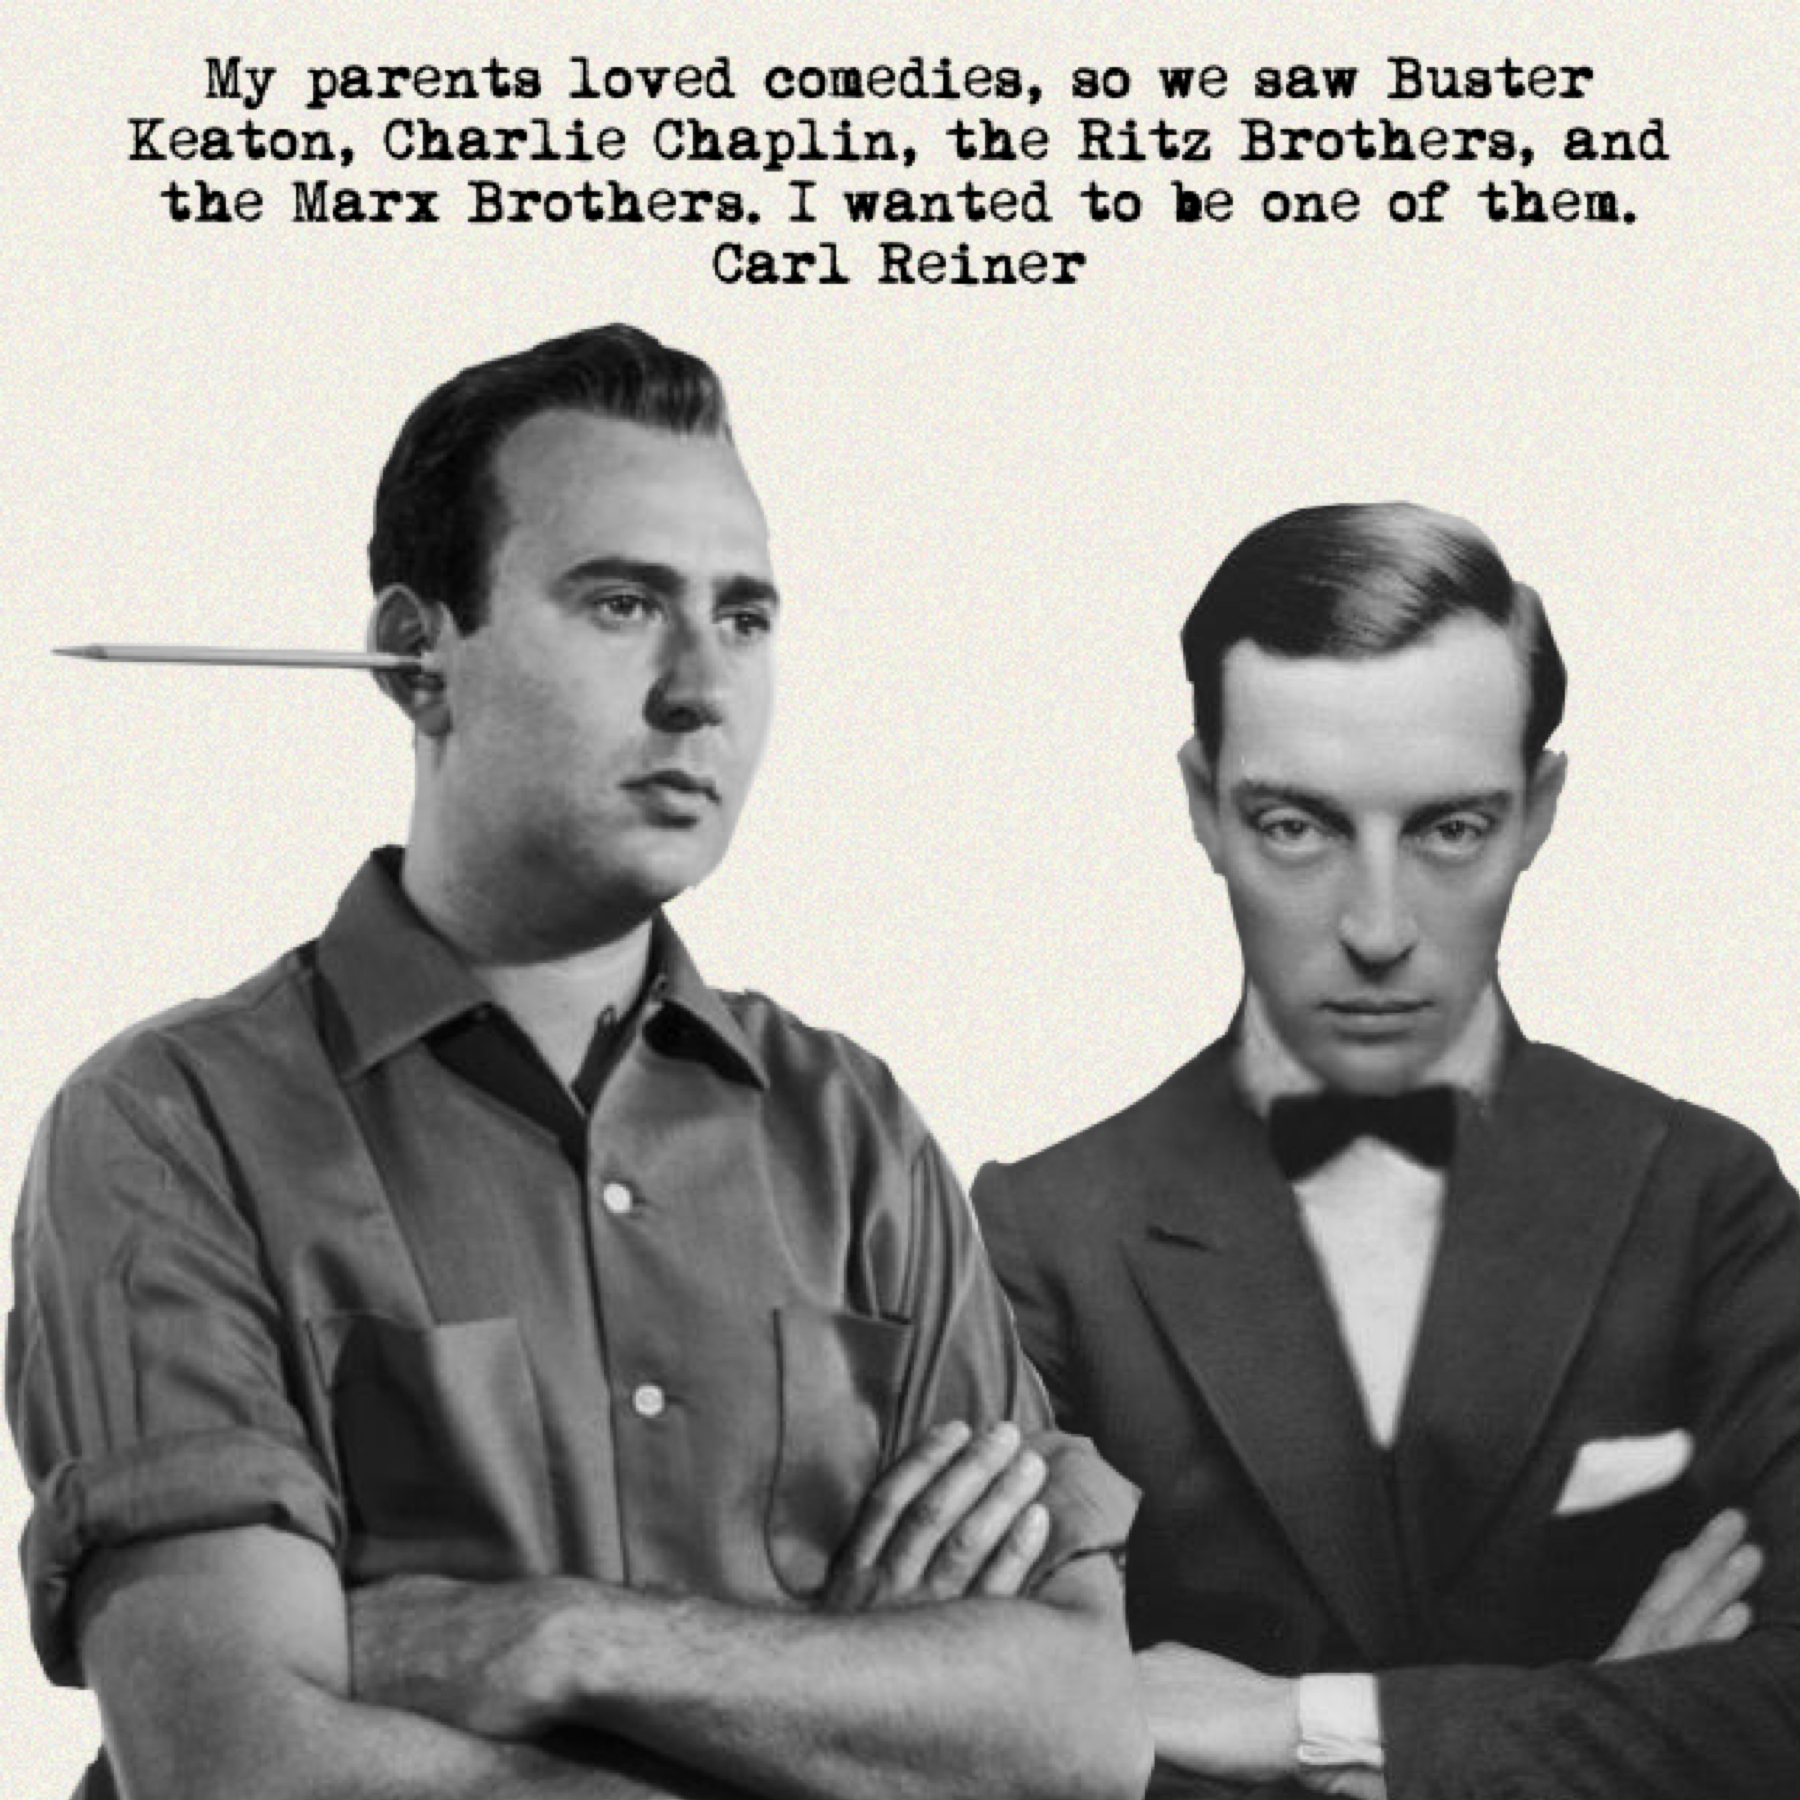 #TalkieTuesday My parents loved comedies, so we saw Buster Keaton, Charlie Chaplin, the Ritz Brothers, and the Marx Brothers. I wanted to be one of them – Carl Reiner Buster Keaton; inspiring generations of comedians, actors & writers 1800×1800